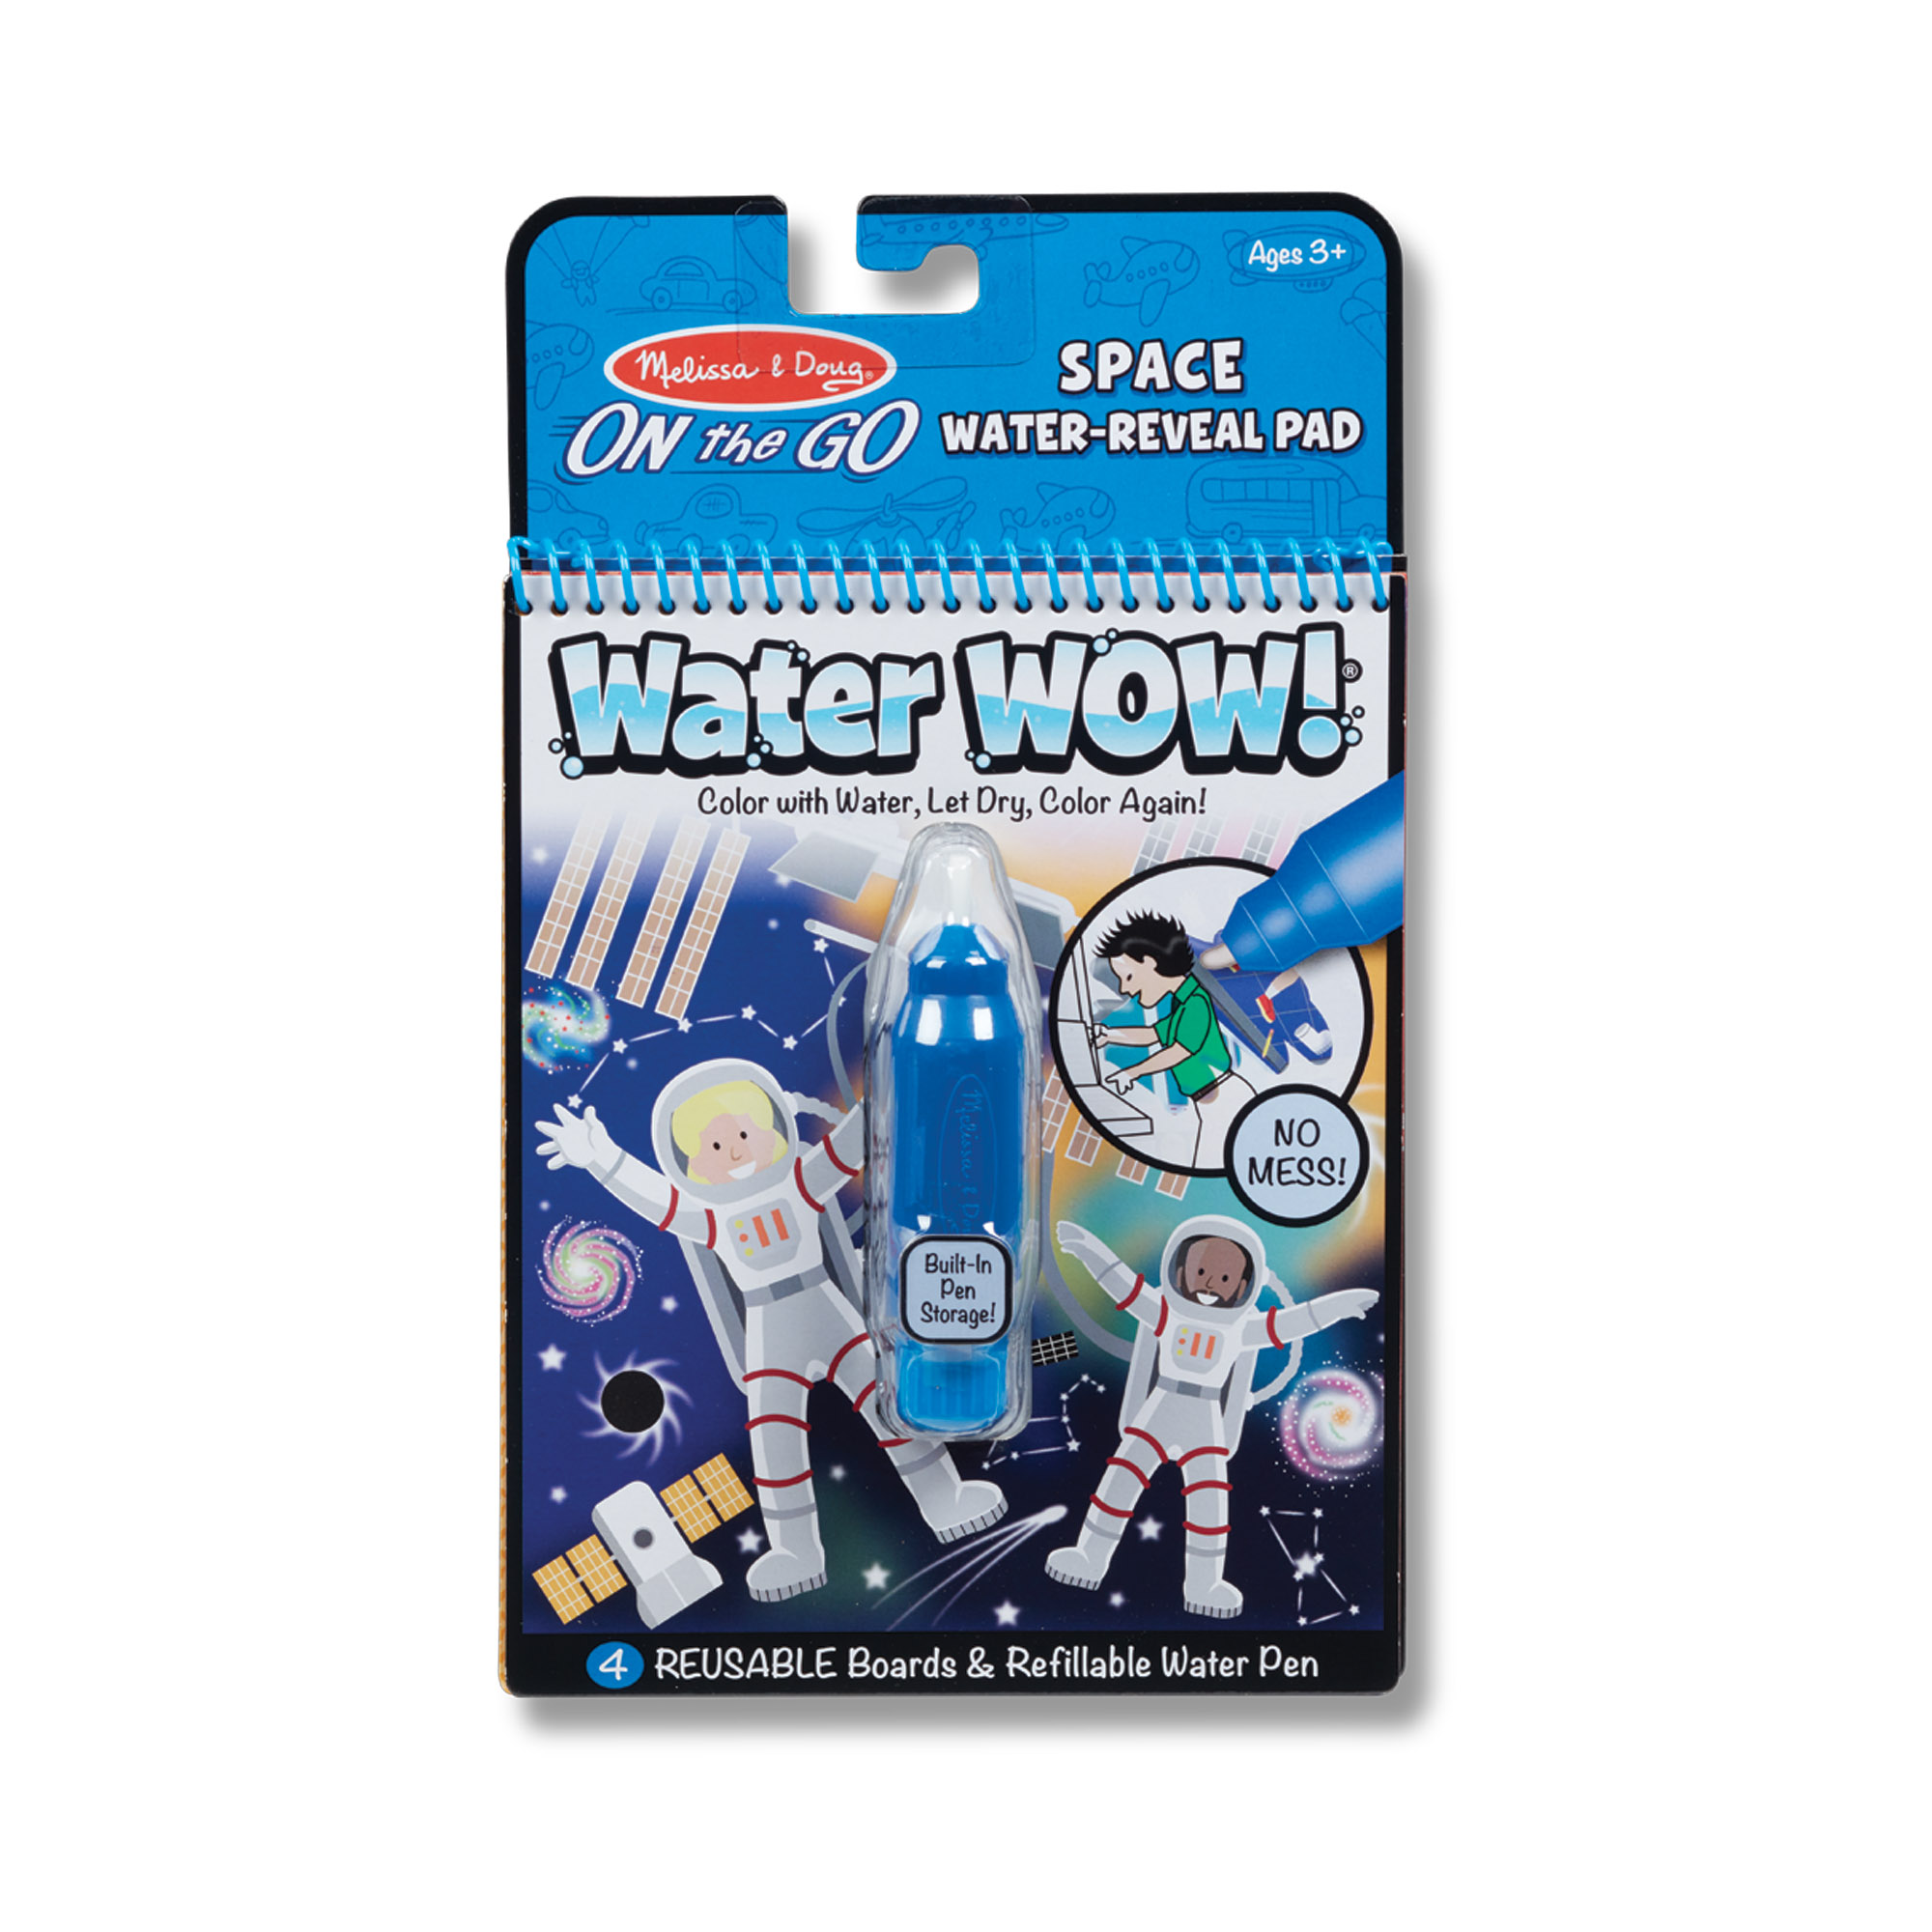 Water Wow! Space Water Reveal Pad